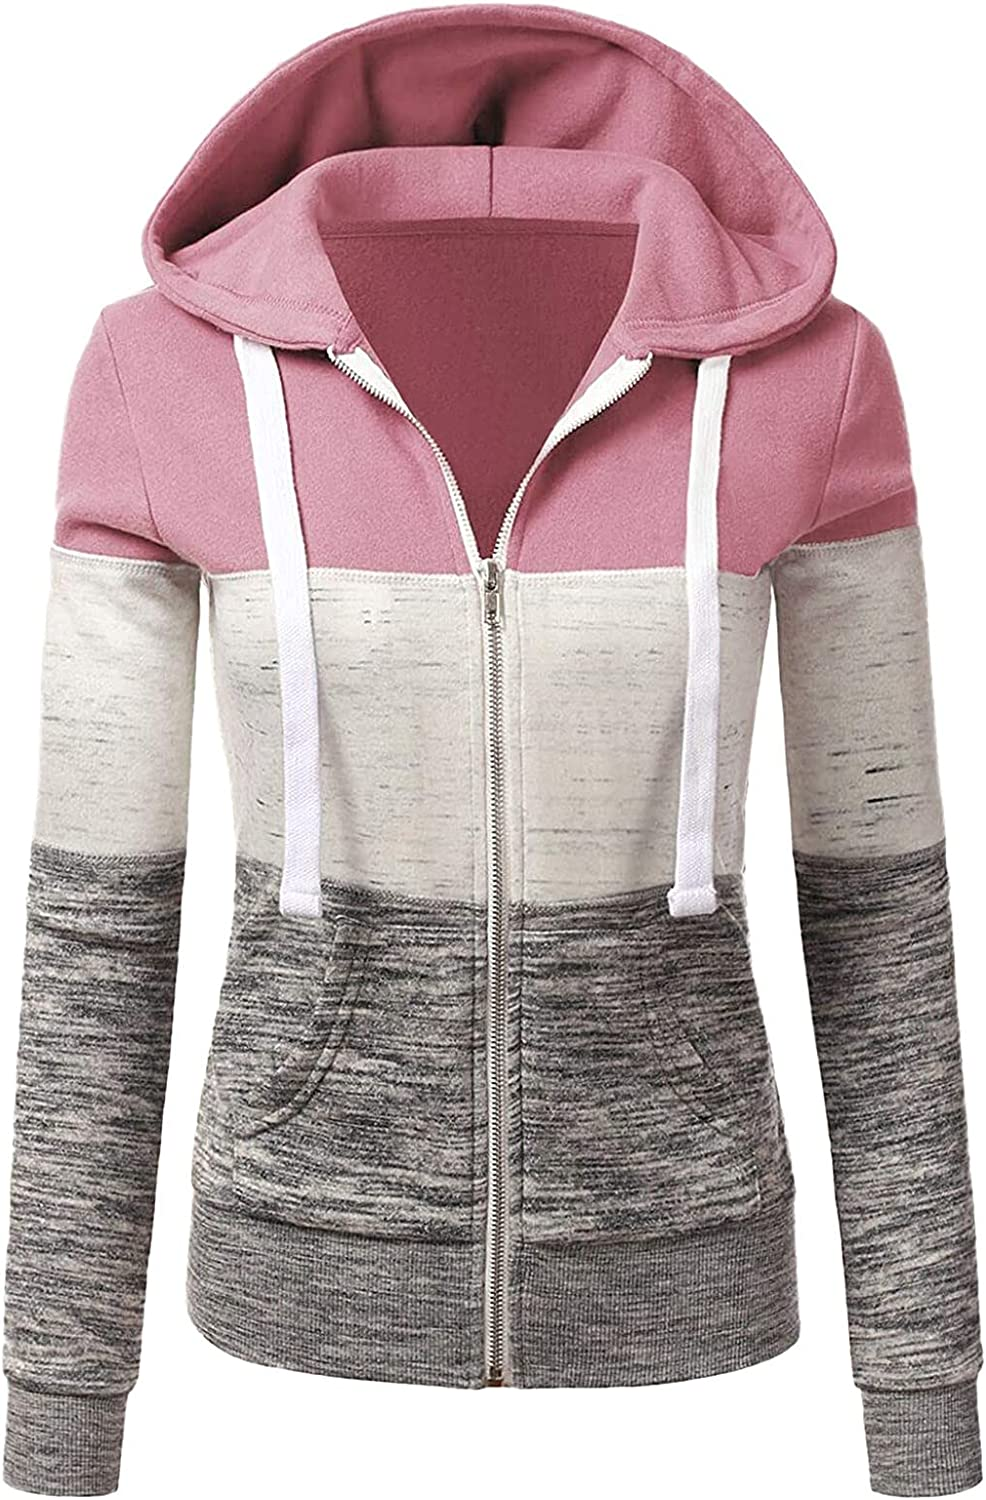 Hoodies Sales for sale Max 48% OFF for Womens Solid Color Swea Pullover Full-Zip Drawstring